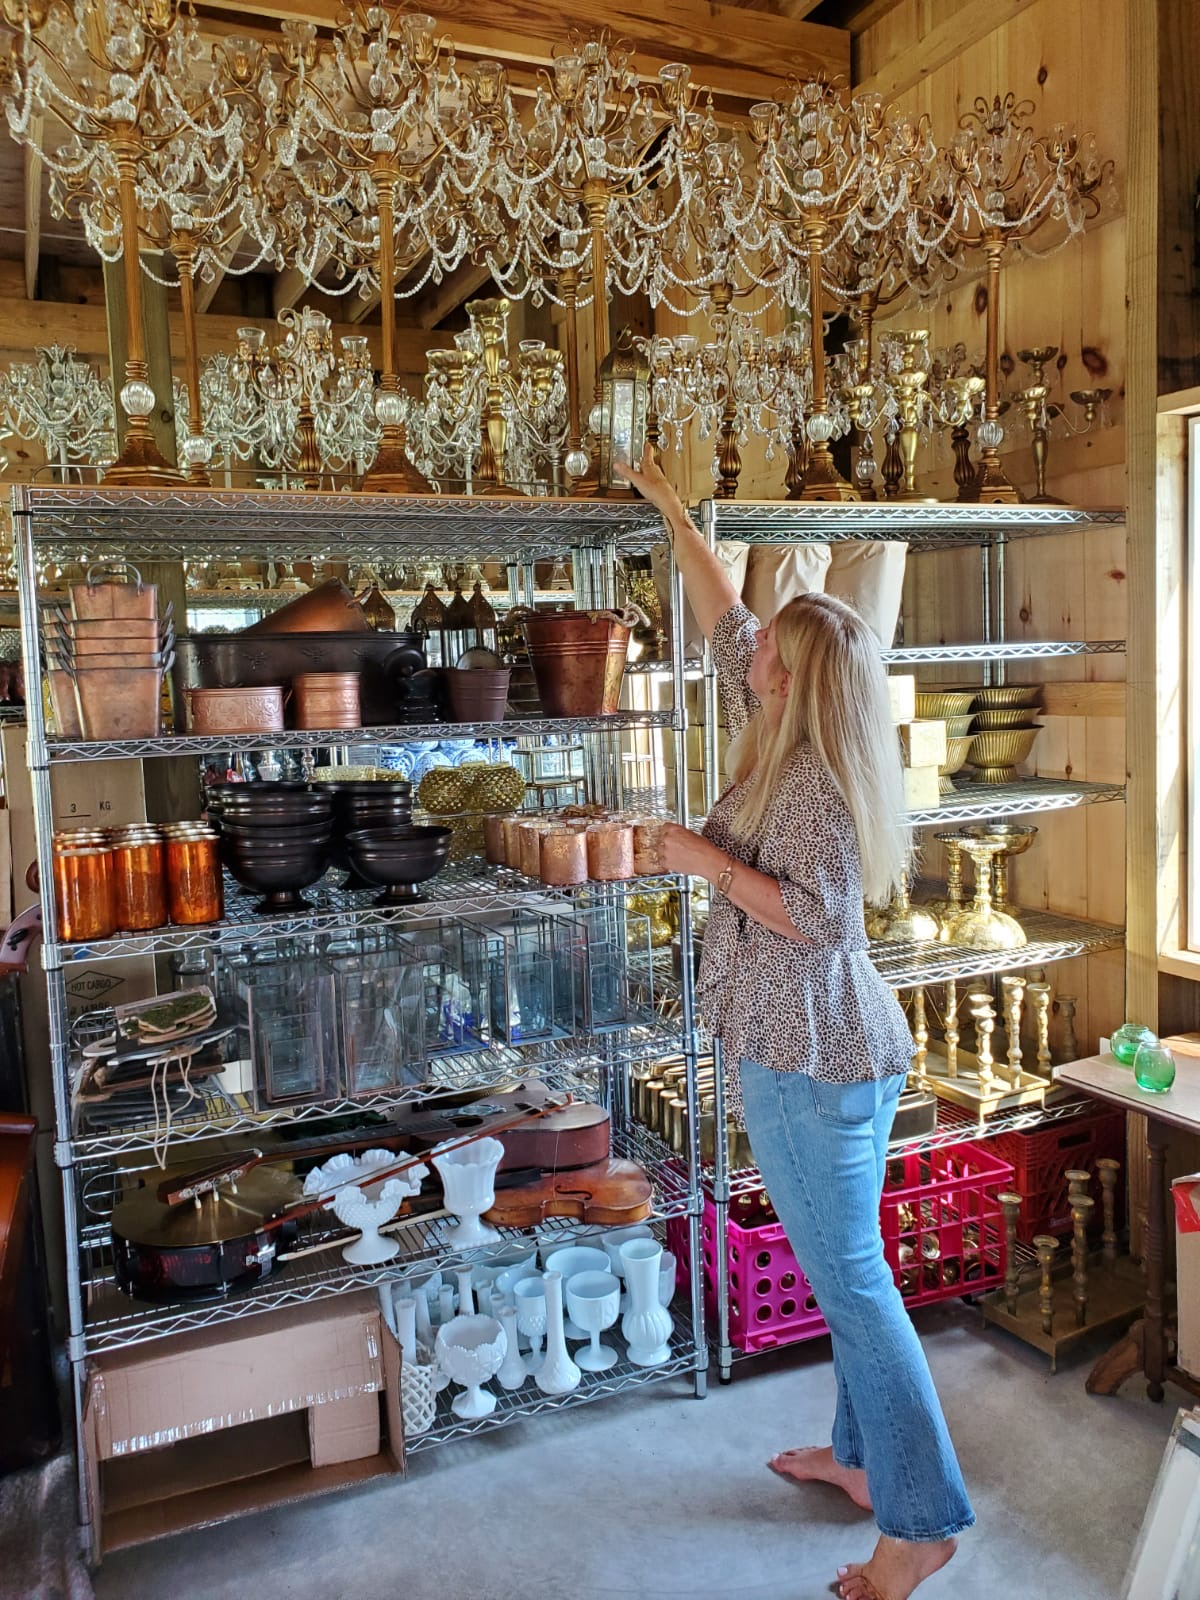 Event Studio's Kelley Truxel with Inventory